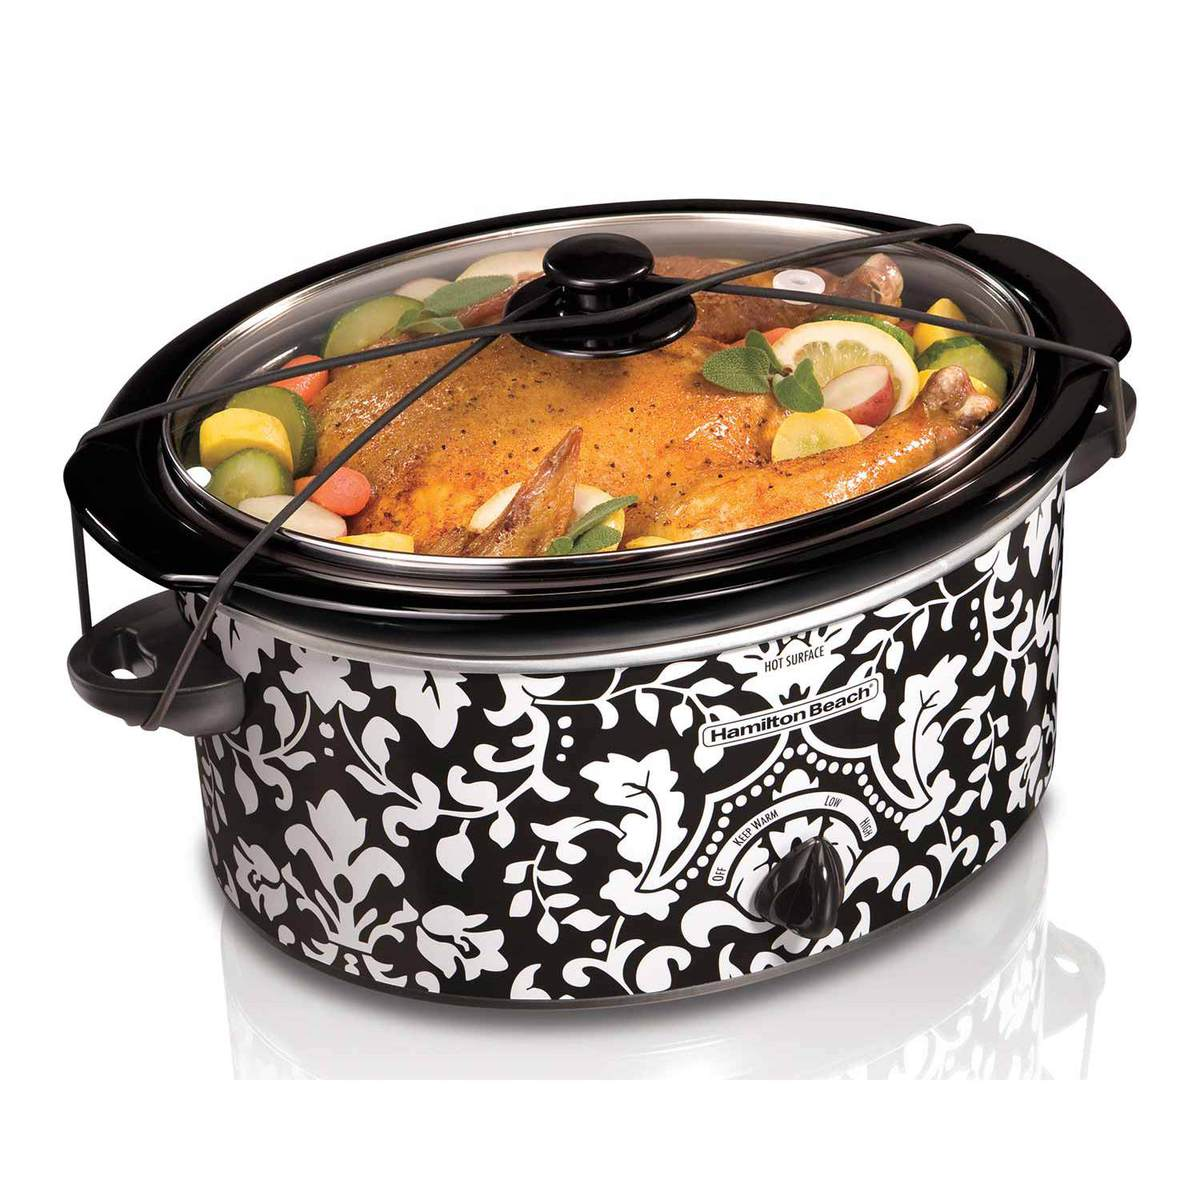 5 Quart Portable Slow Cooker (33357)